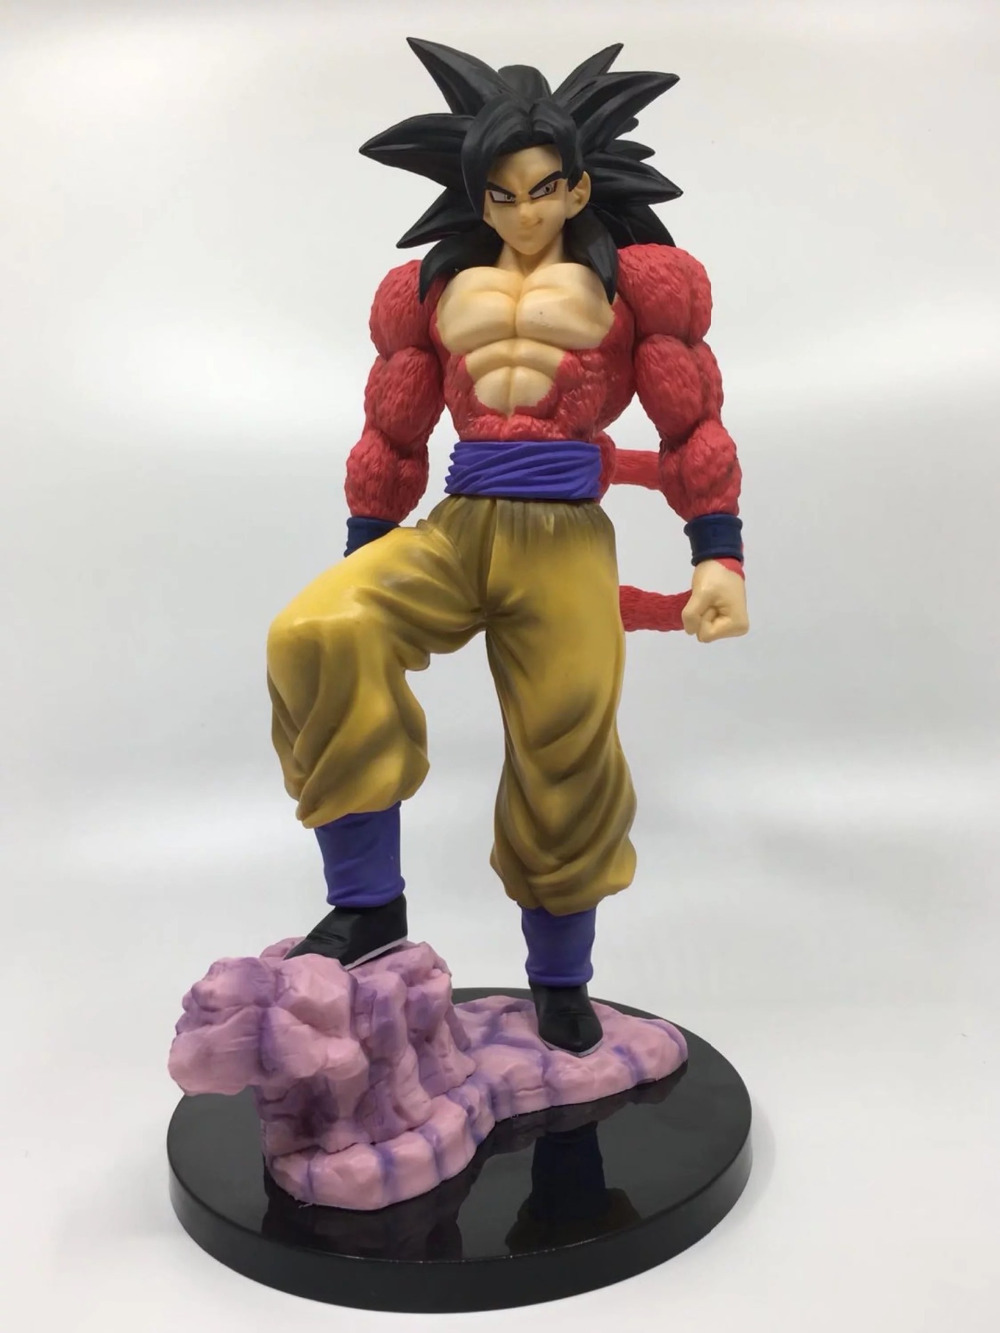 Dragon Ball Son Gokou Action Figure 1/6 scale painted figure Super Saiyan 4 Son Goku PVC figure Toy Anime 16cm anime dragon ball z goku action figure son gokou shfiguarts super saiyan god resurrection f model doll